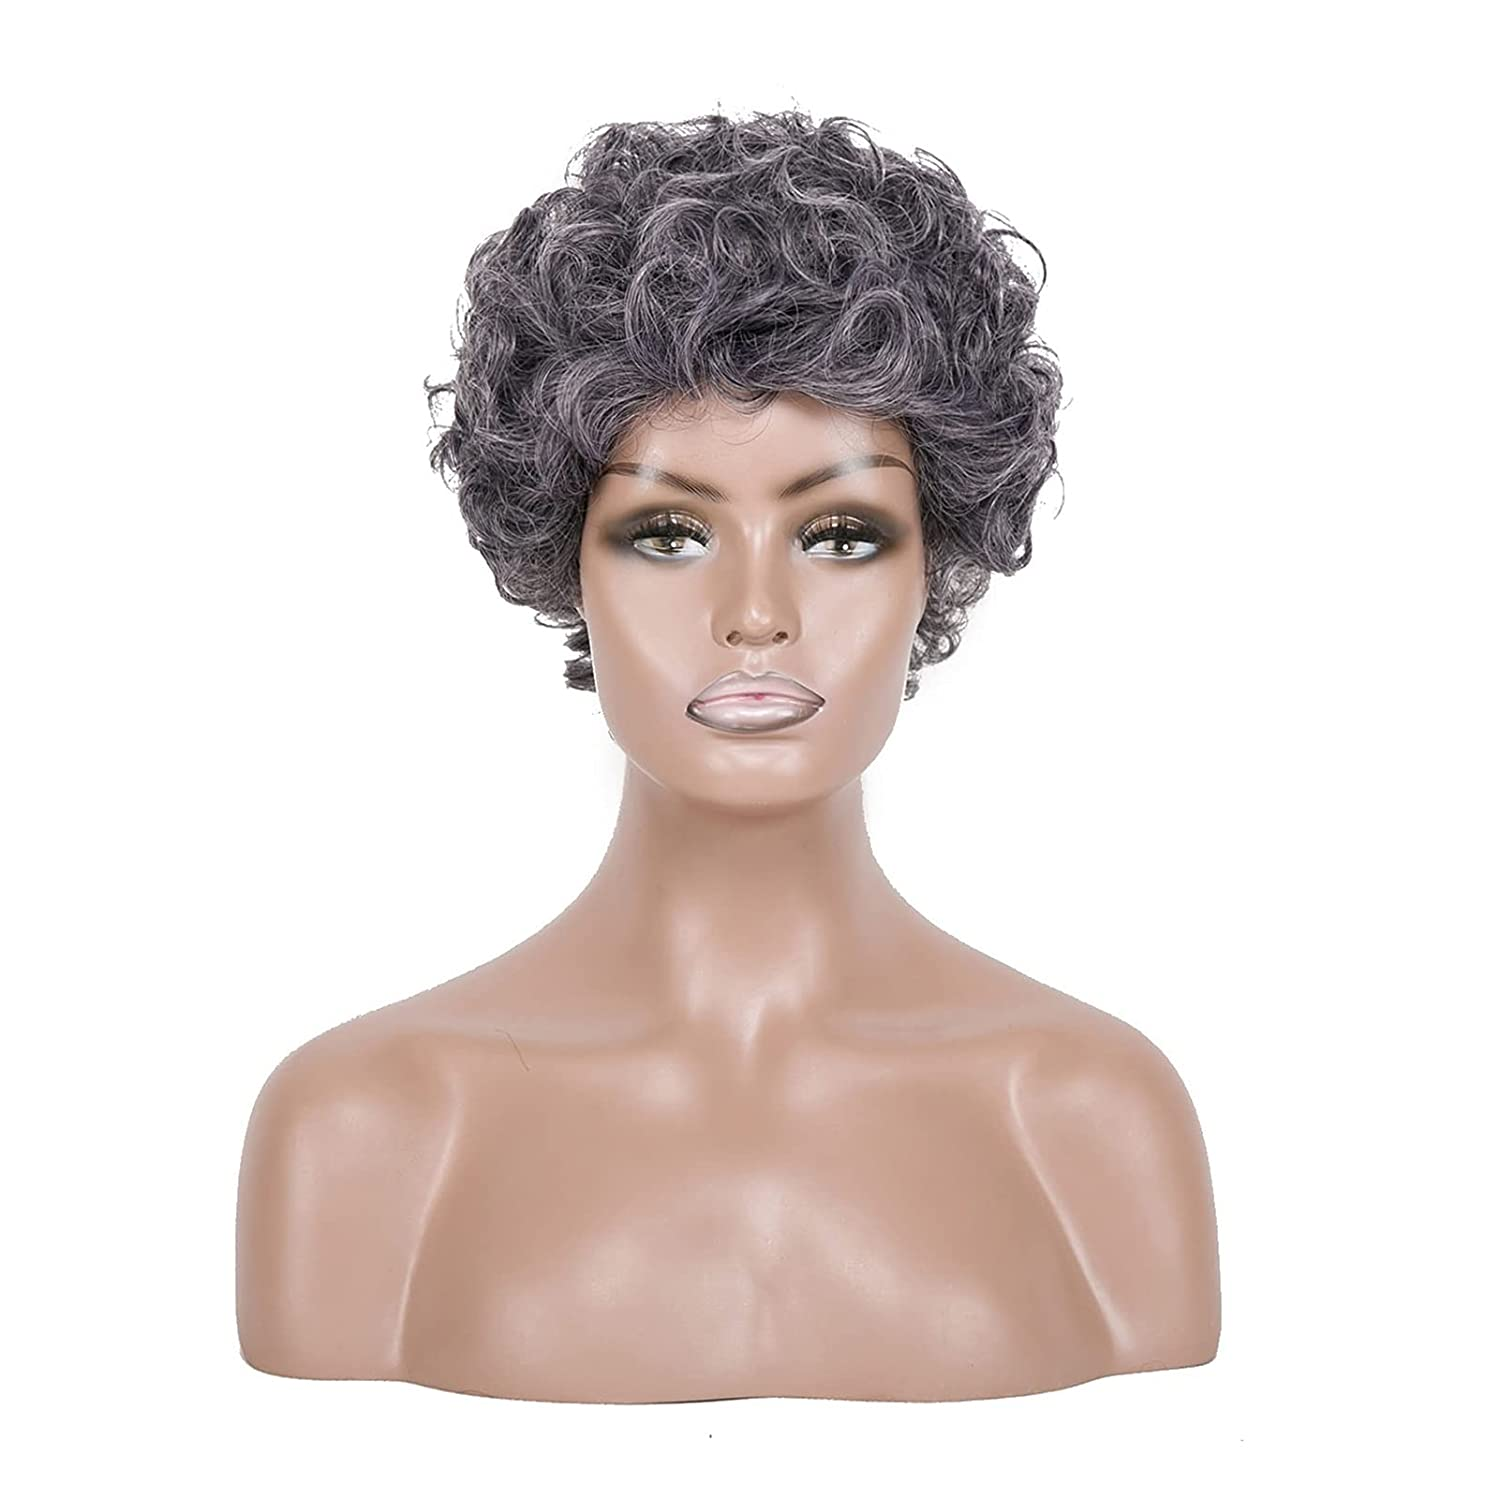 wigs for Selling rankings women Short Hair Wigs Curly wholesale Bangs,Women African With